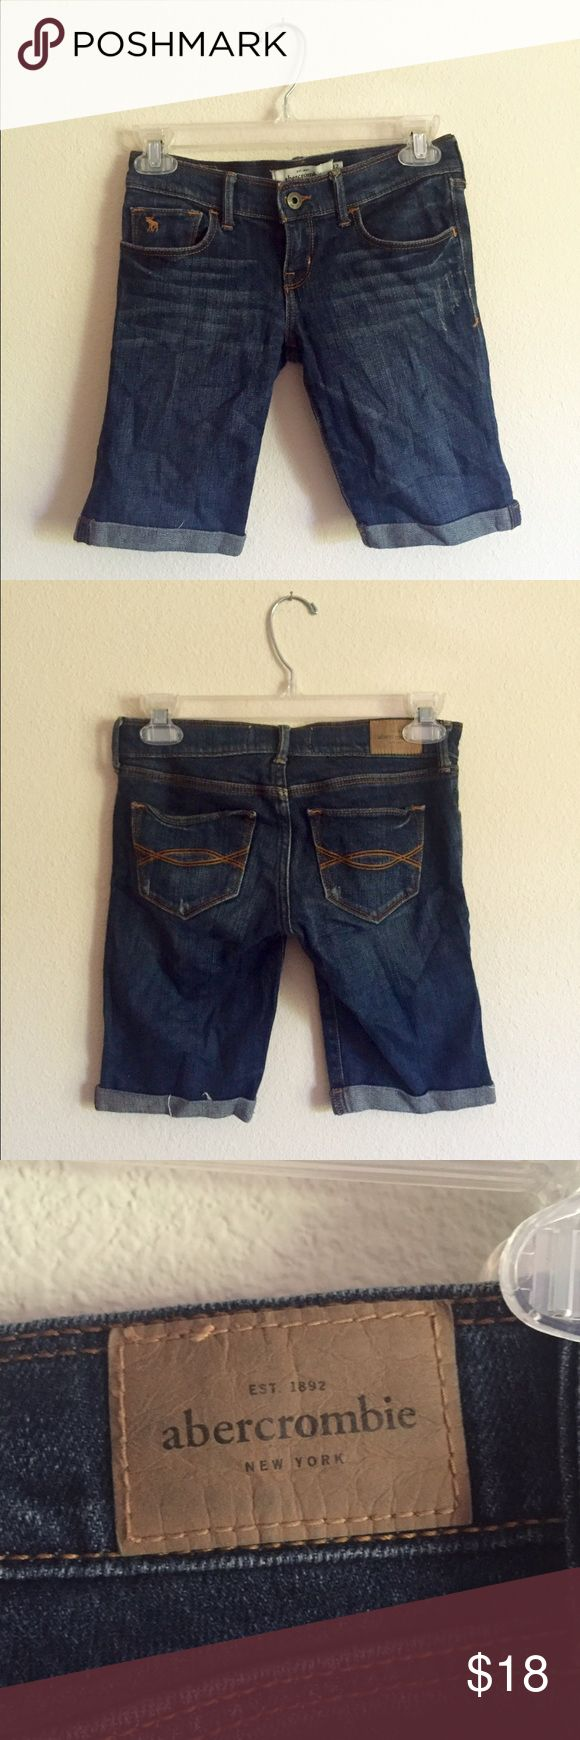 Abercrombie KIDS jean shorts - Abercrombie KIDS size 12  - has some stretch but not too much - longer length which is ideal for kids  - the quality is excellent!! personally work for Abercrombie now and these will last a LONG time ☺️  - money is going towards college   feel free to ask questions/offer Abercrombie & Fitch Shorts Jean Shorts